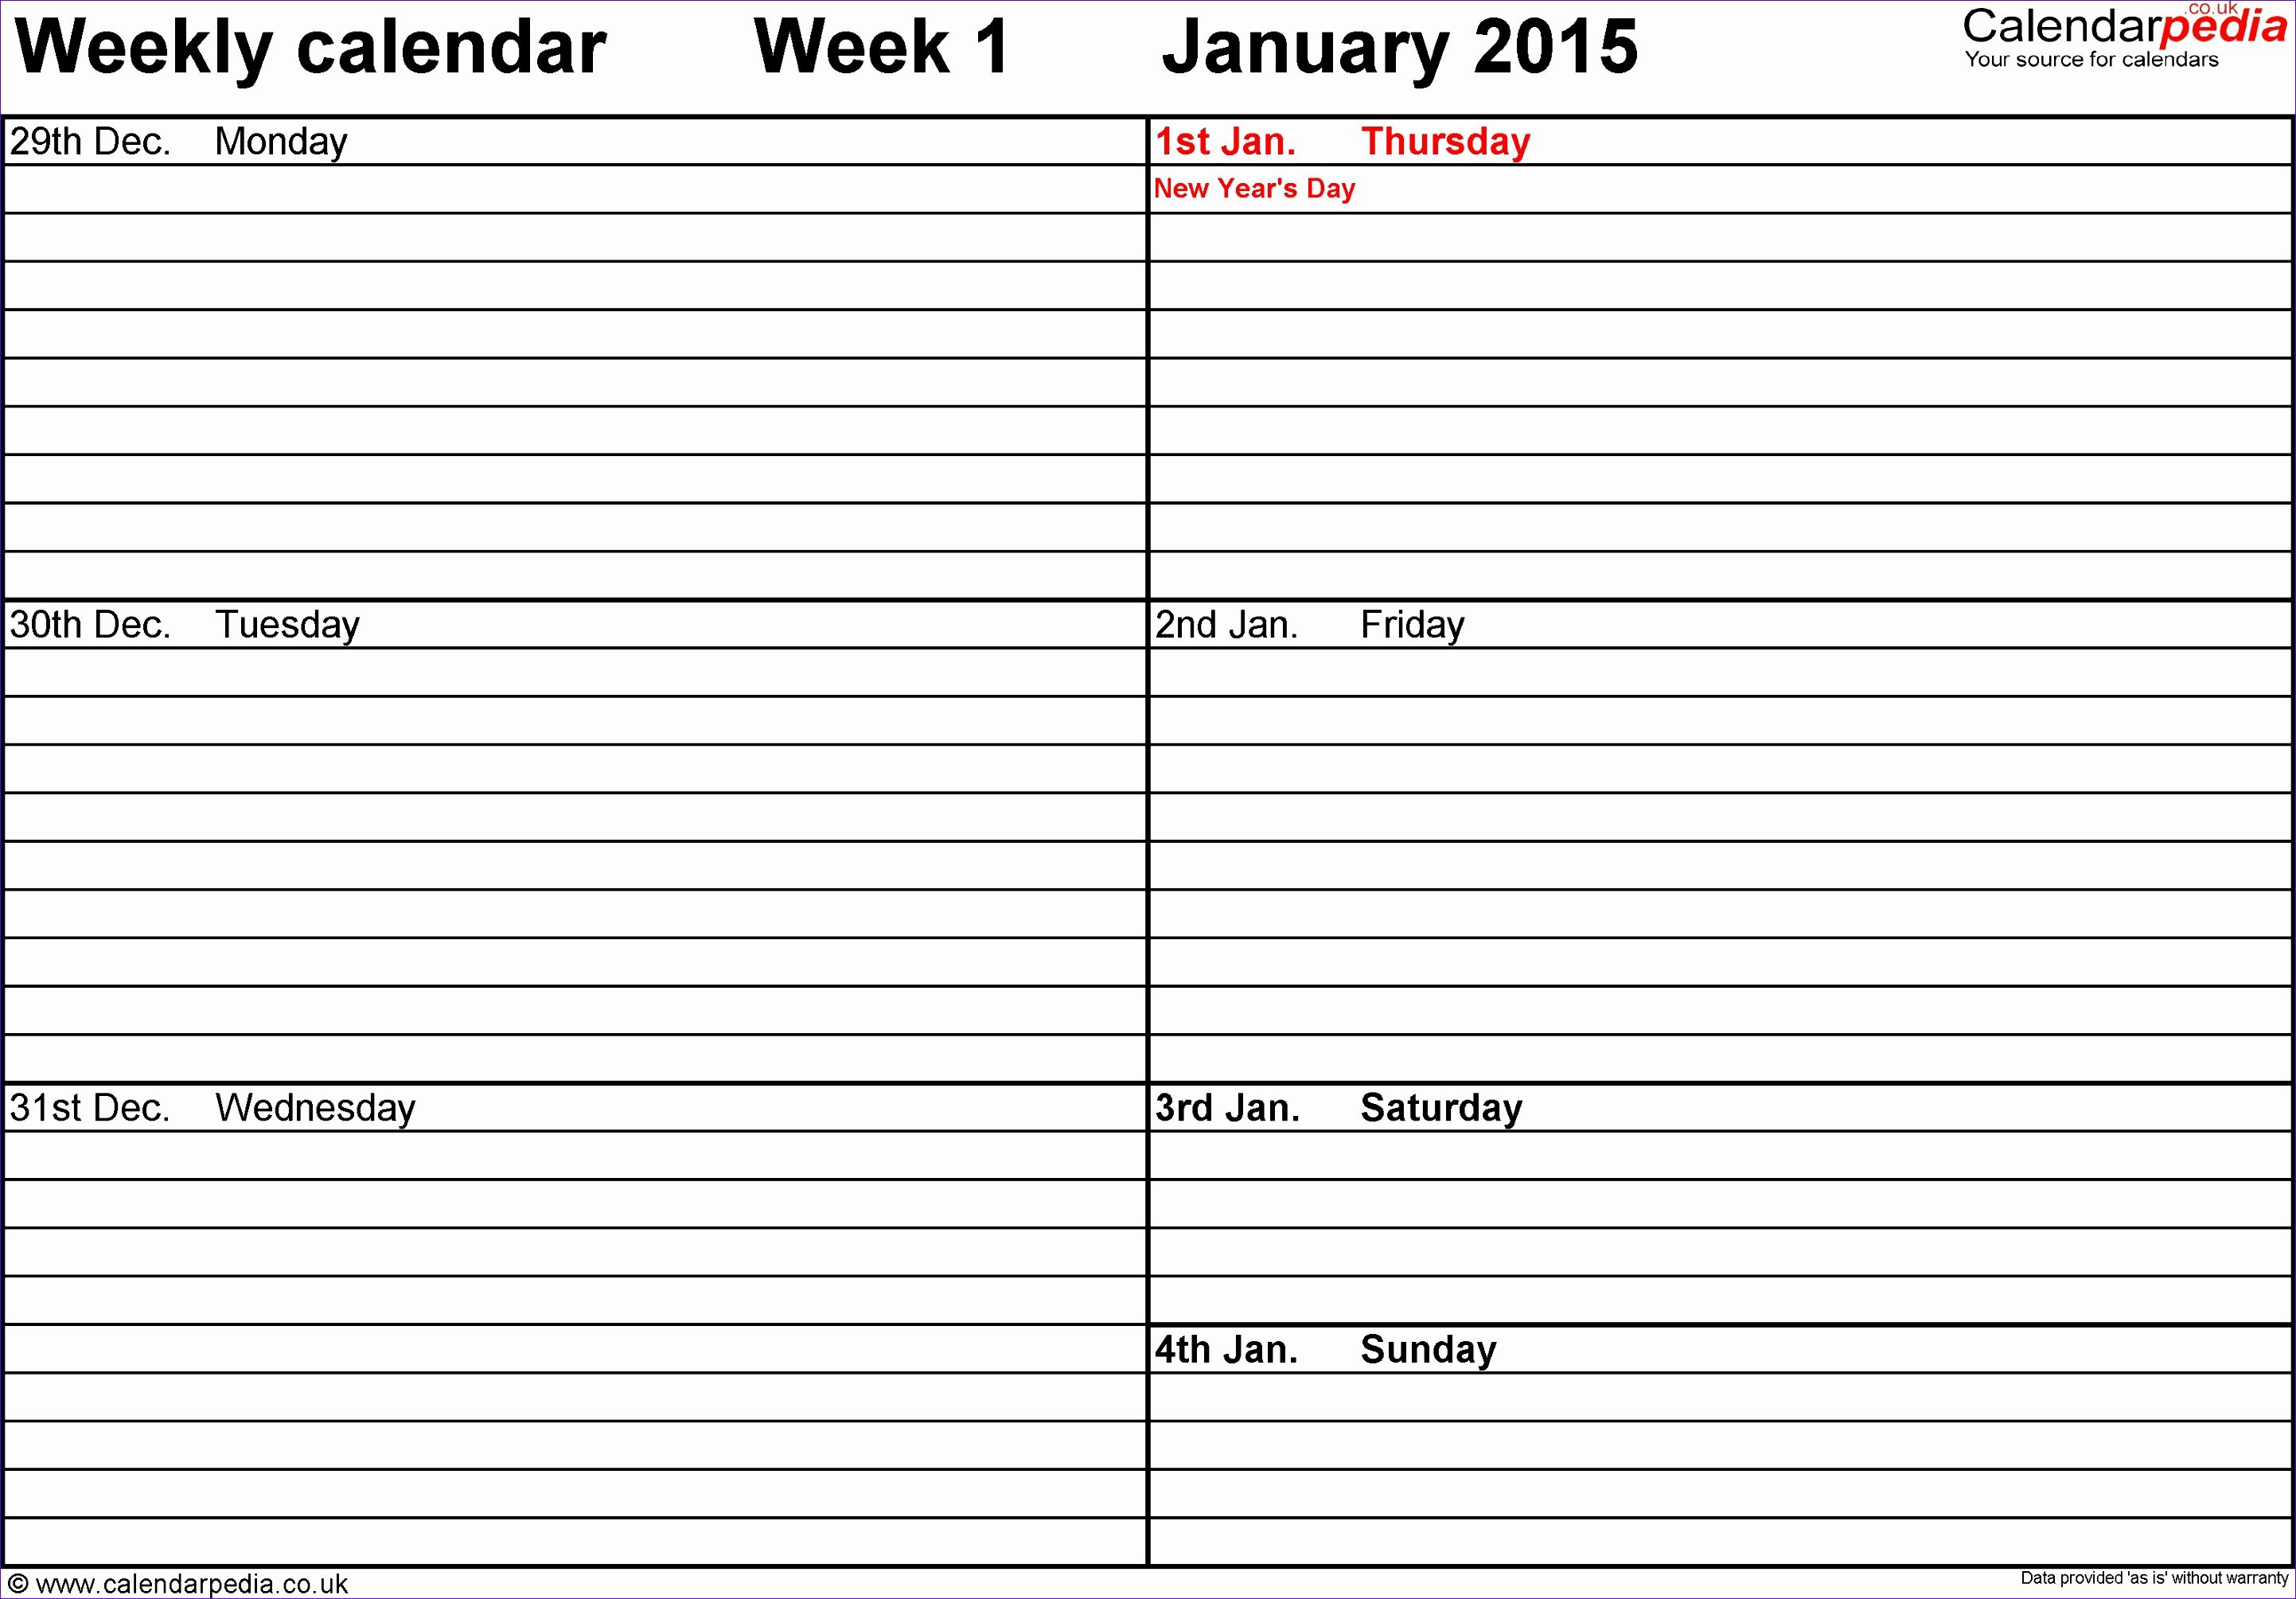 weekly calendar 2015 uk free printable templates for pdf gallery 28852009